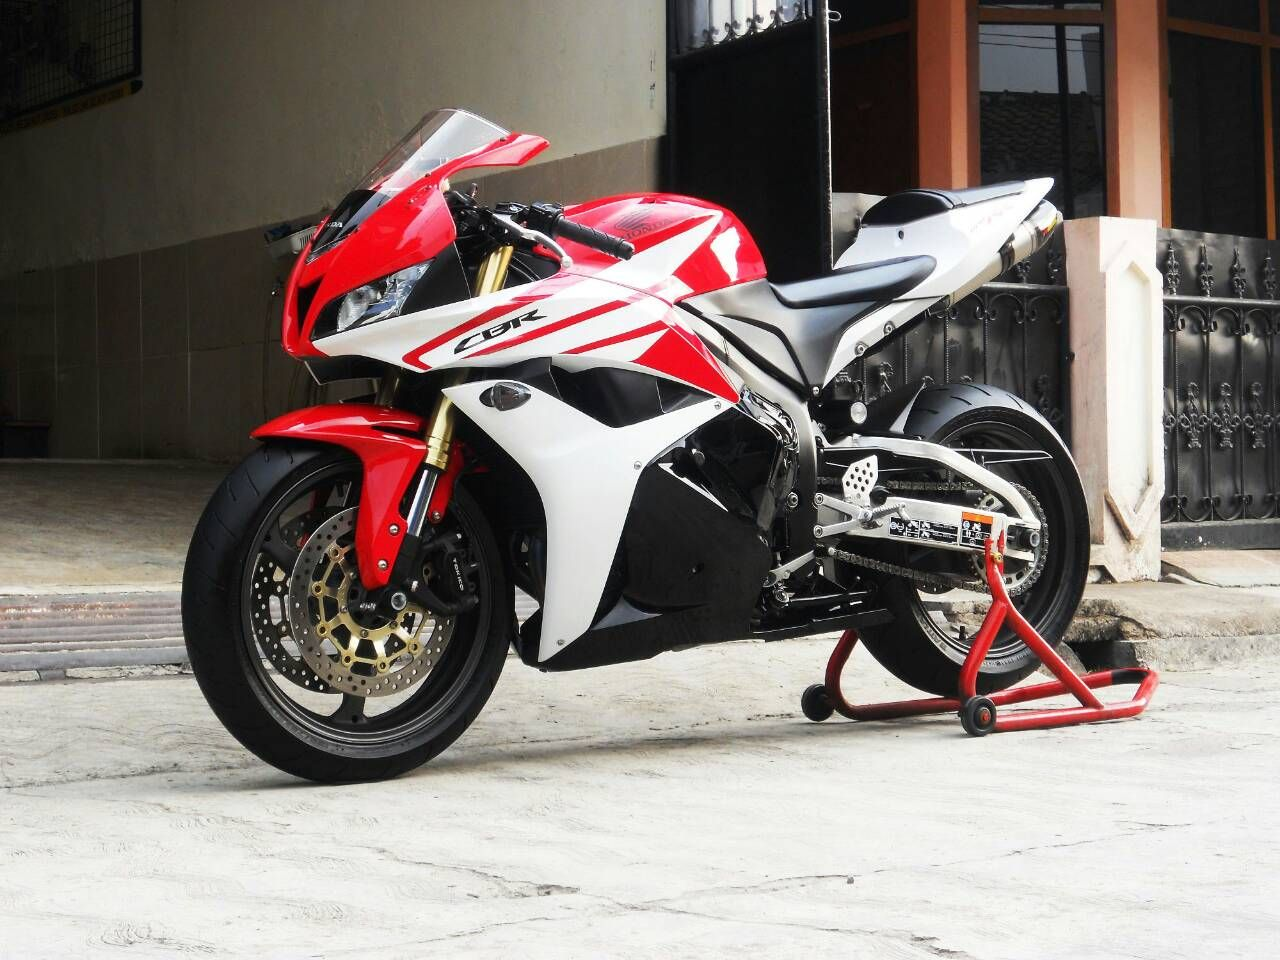 for sale moge honda cbr 600 rr 2012 euro spec full spec exhaust akrapovic carbon titanium. Black Bedroom Furniture Sets. Home Design Ideas